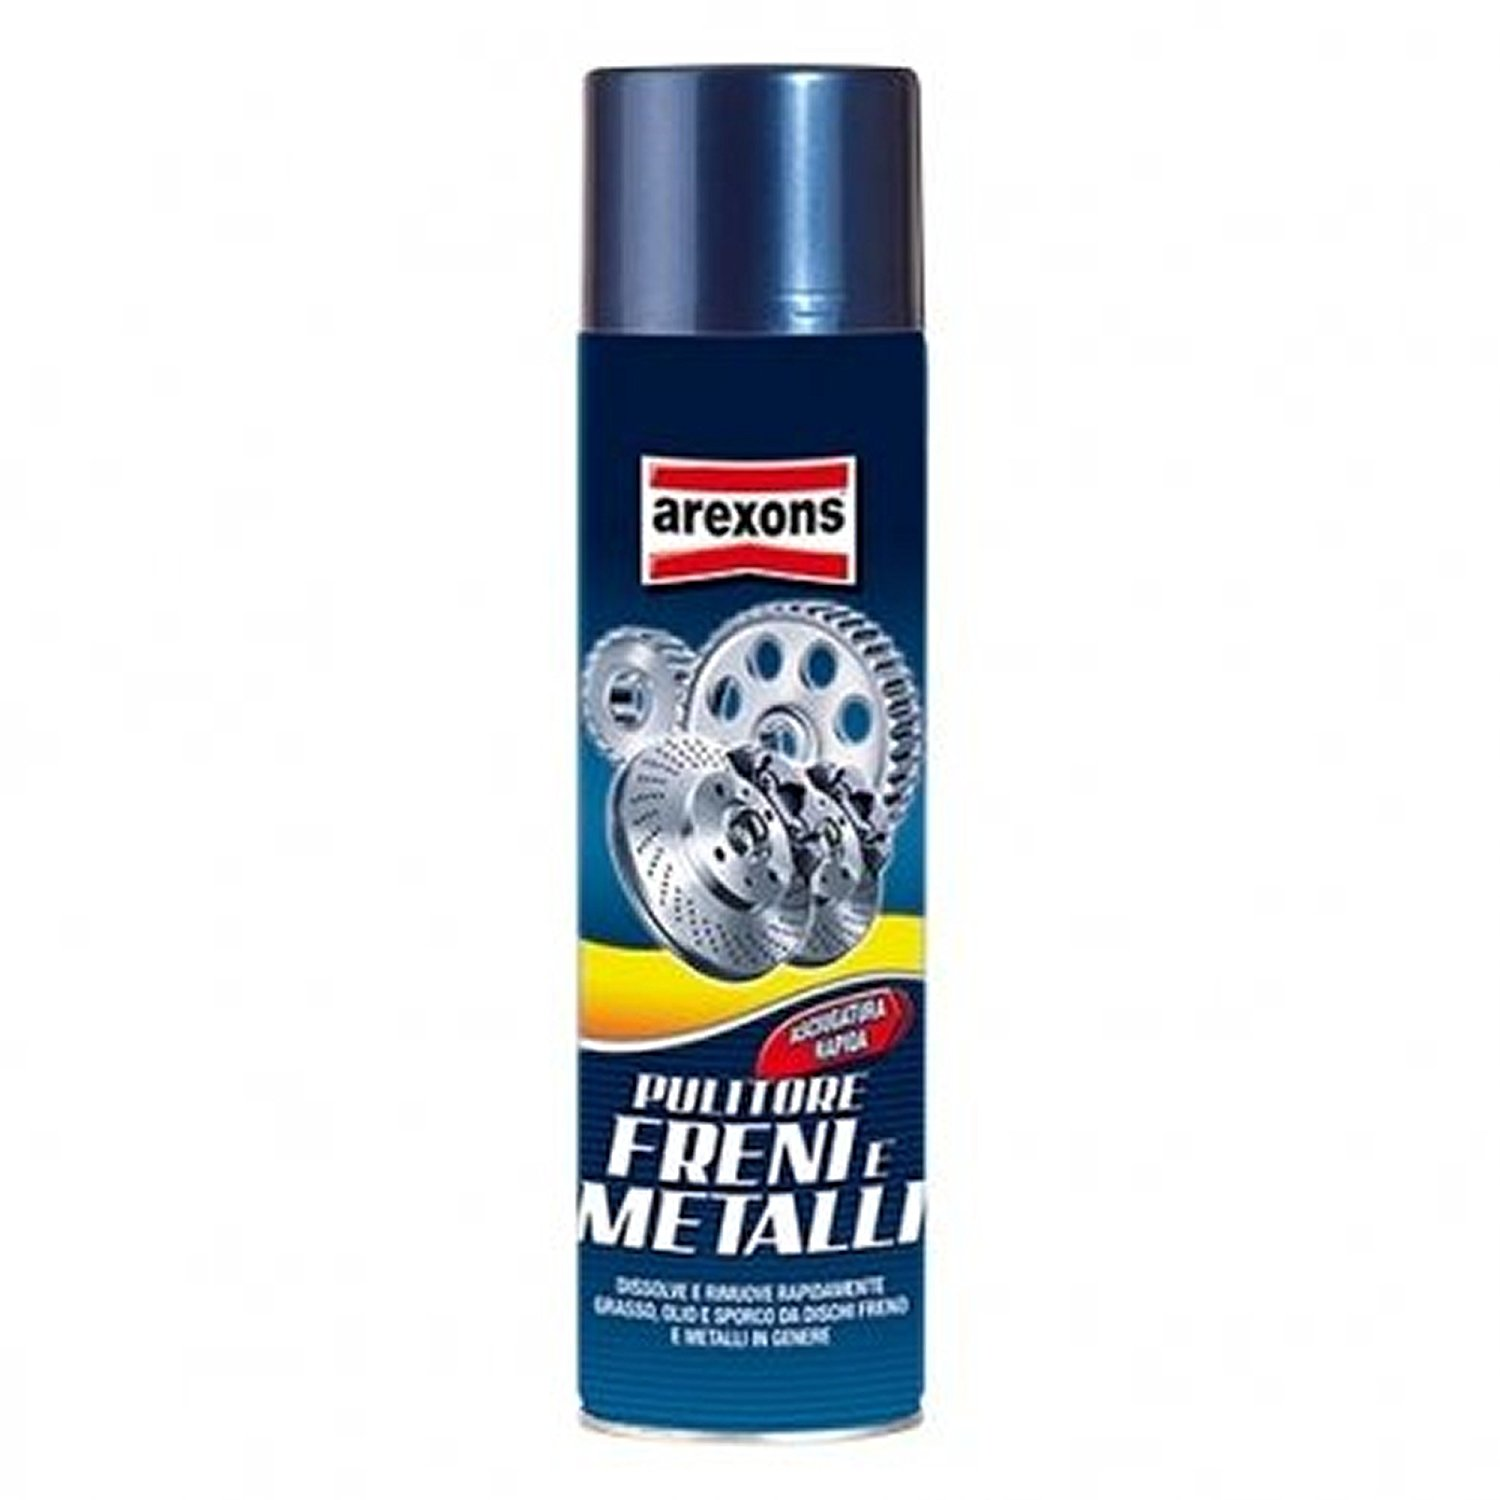 Pulitore Freni e Metalli Arexons 8163 500ML Spray Per Pulizia Freni a Disco.